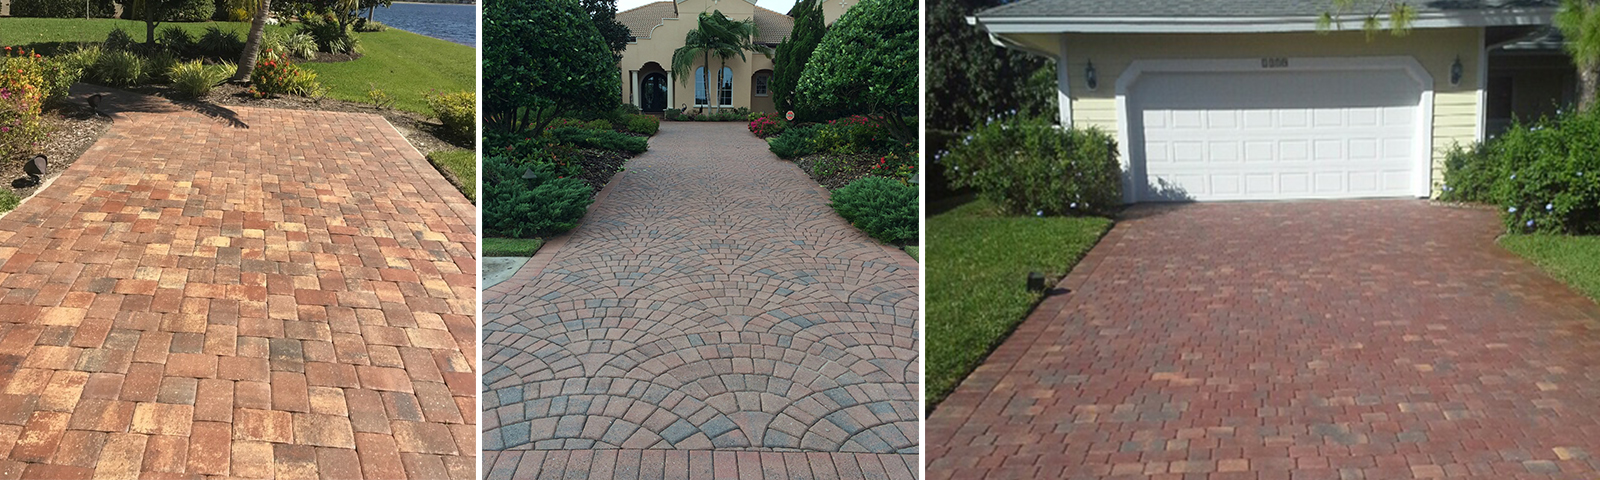 Clean Brick Pavers